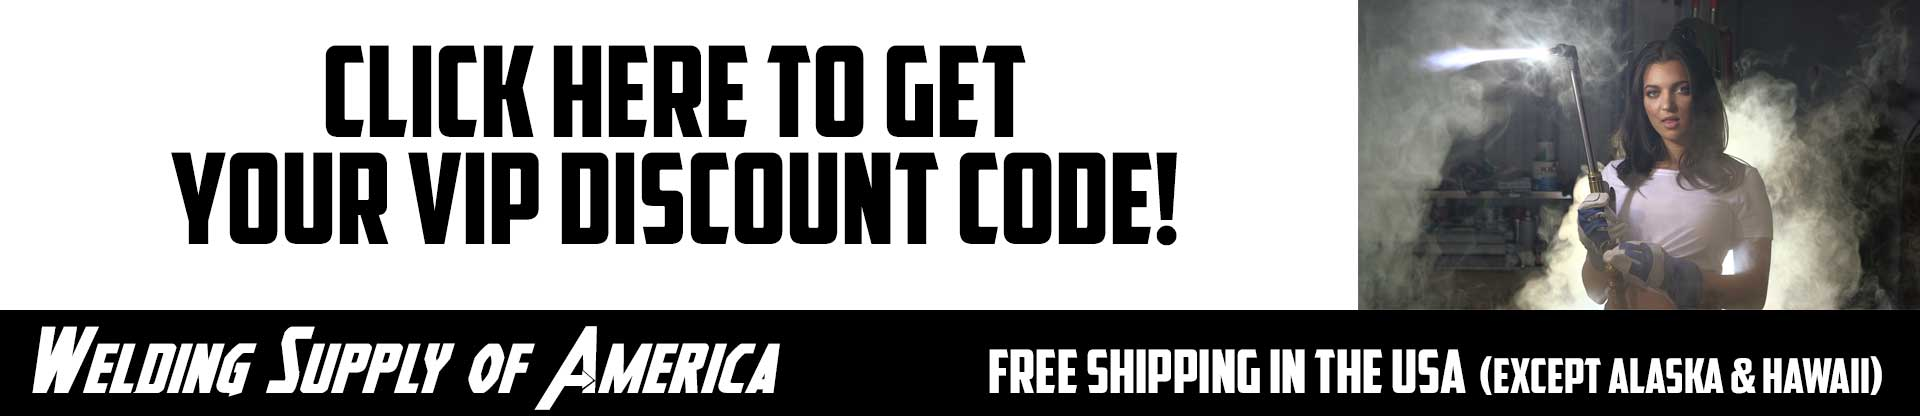 Get our VIP Discount Code!